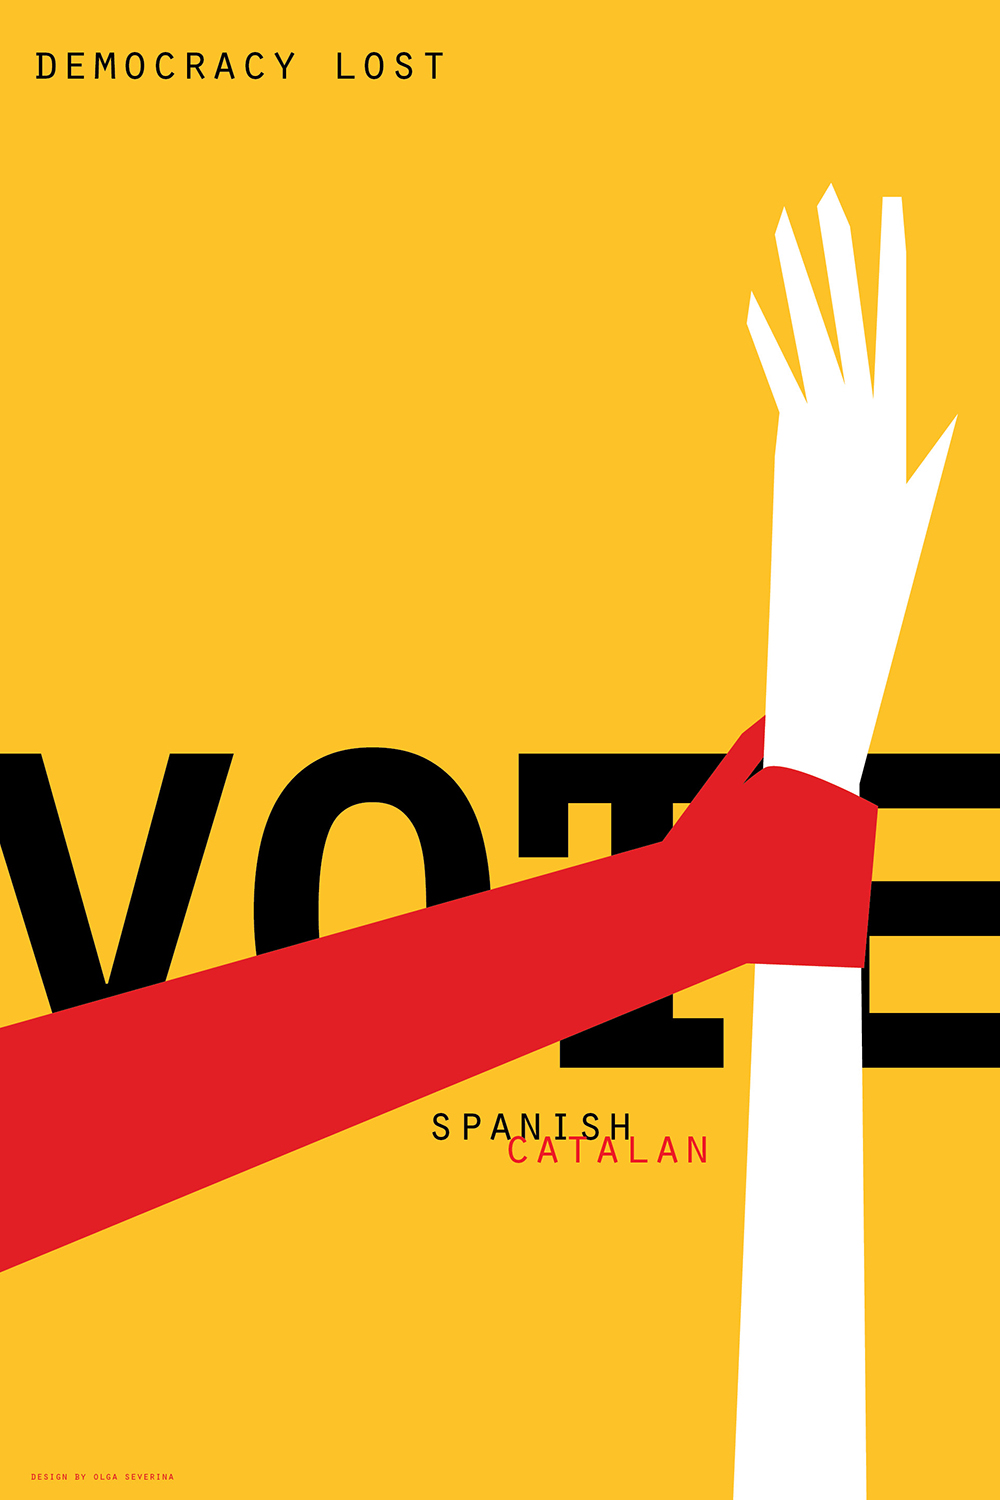 olga_severina_democracy_lost_spain_catalan_vote